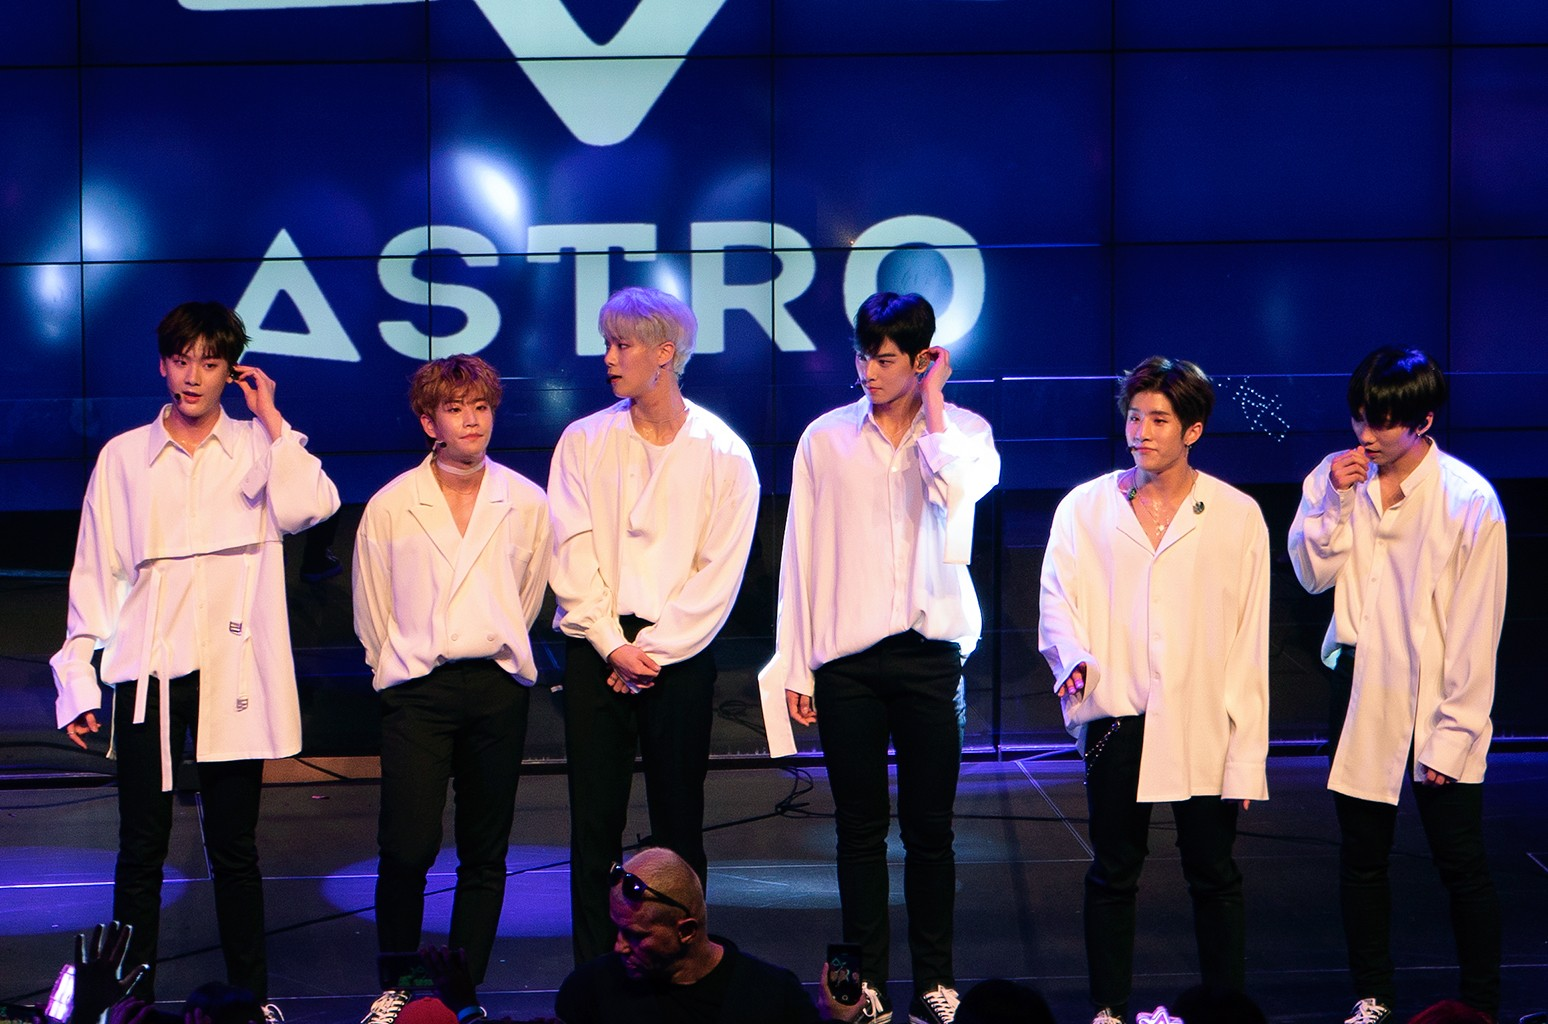 ASTRO at K-Expo 2018.